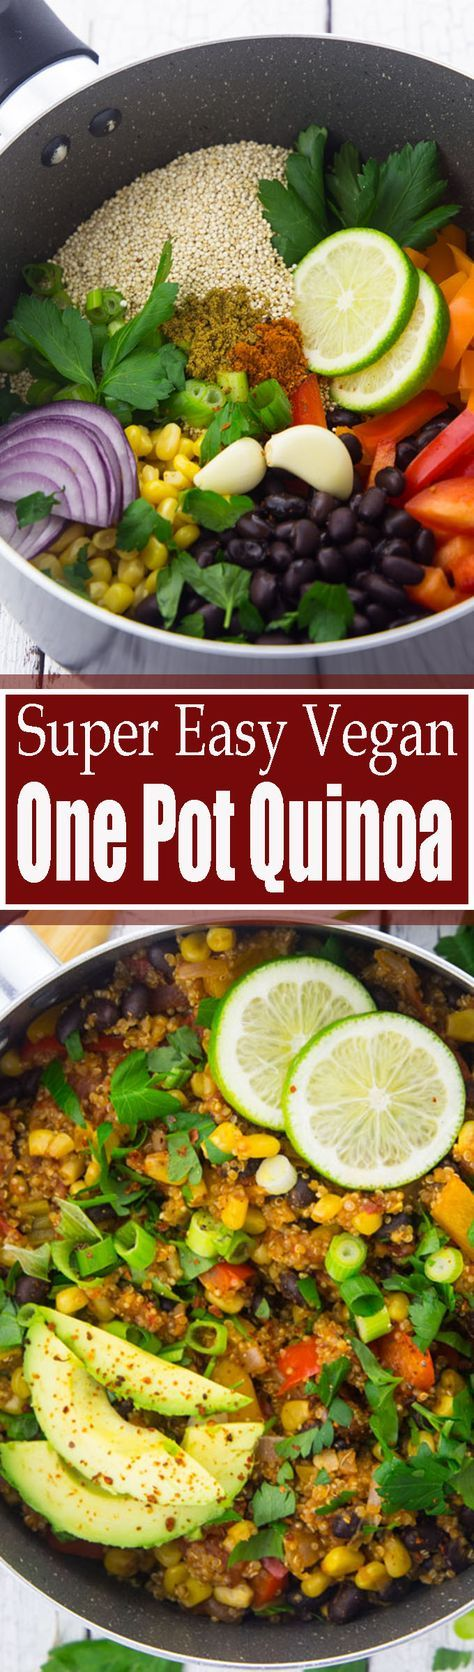 This one pot quinoa makes such a great and healthy dinner! It's vegan, vegetarian, gluten-free, and super easy to make!